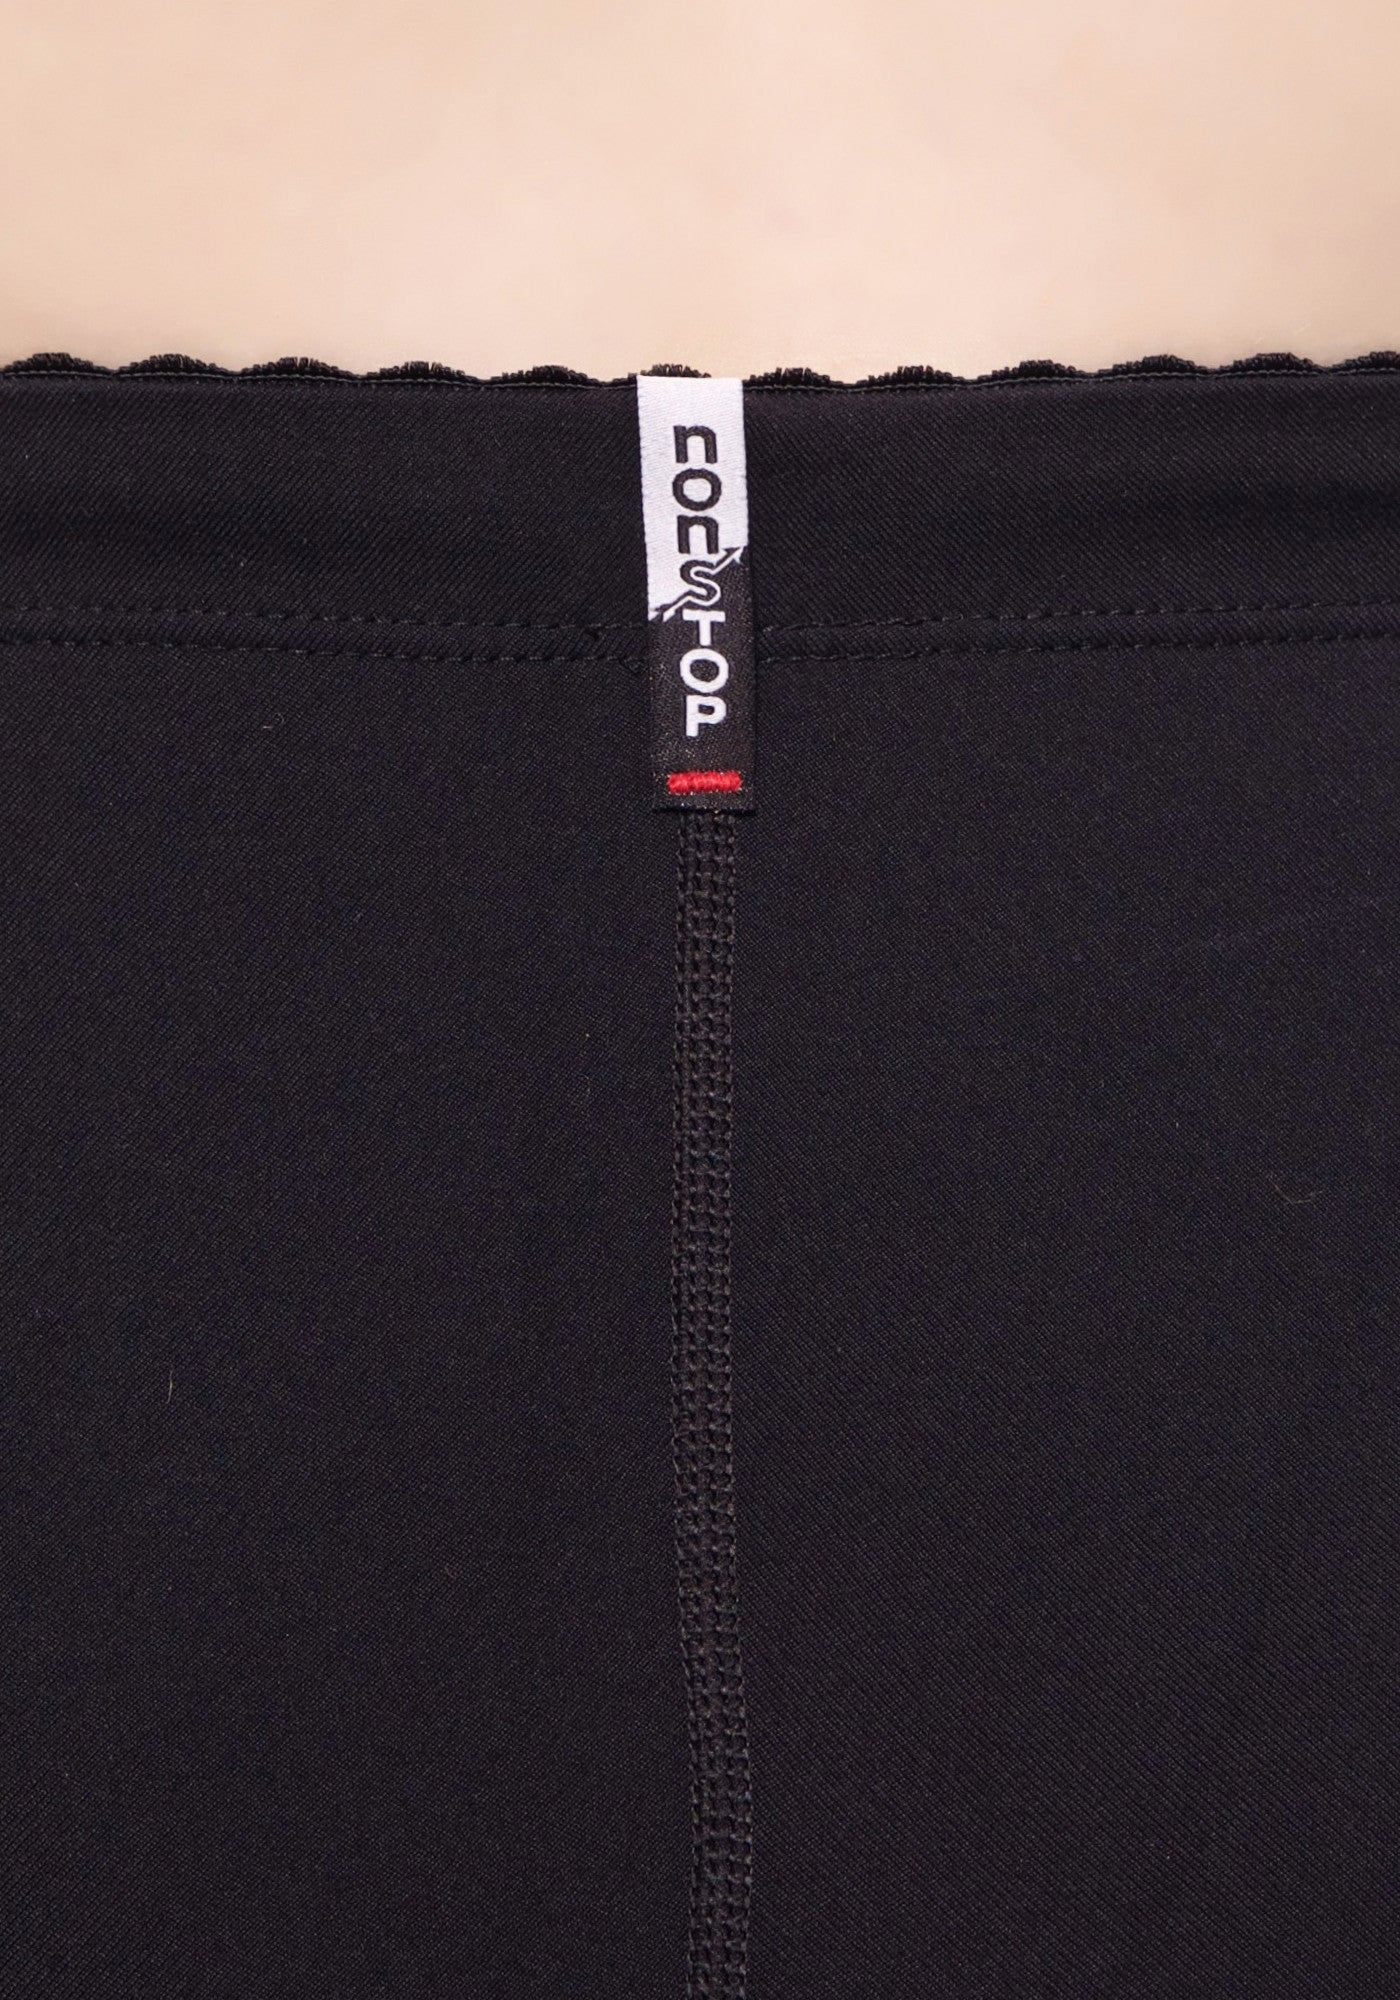 Label detail of our high waisted legging in Black with hidden drawstring at waist.